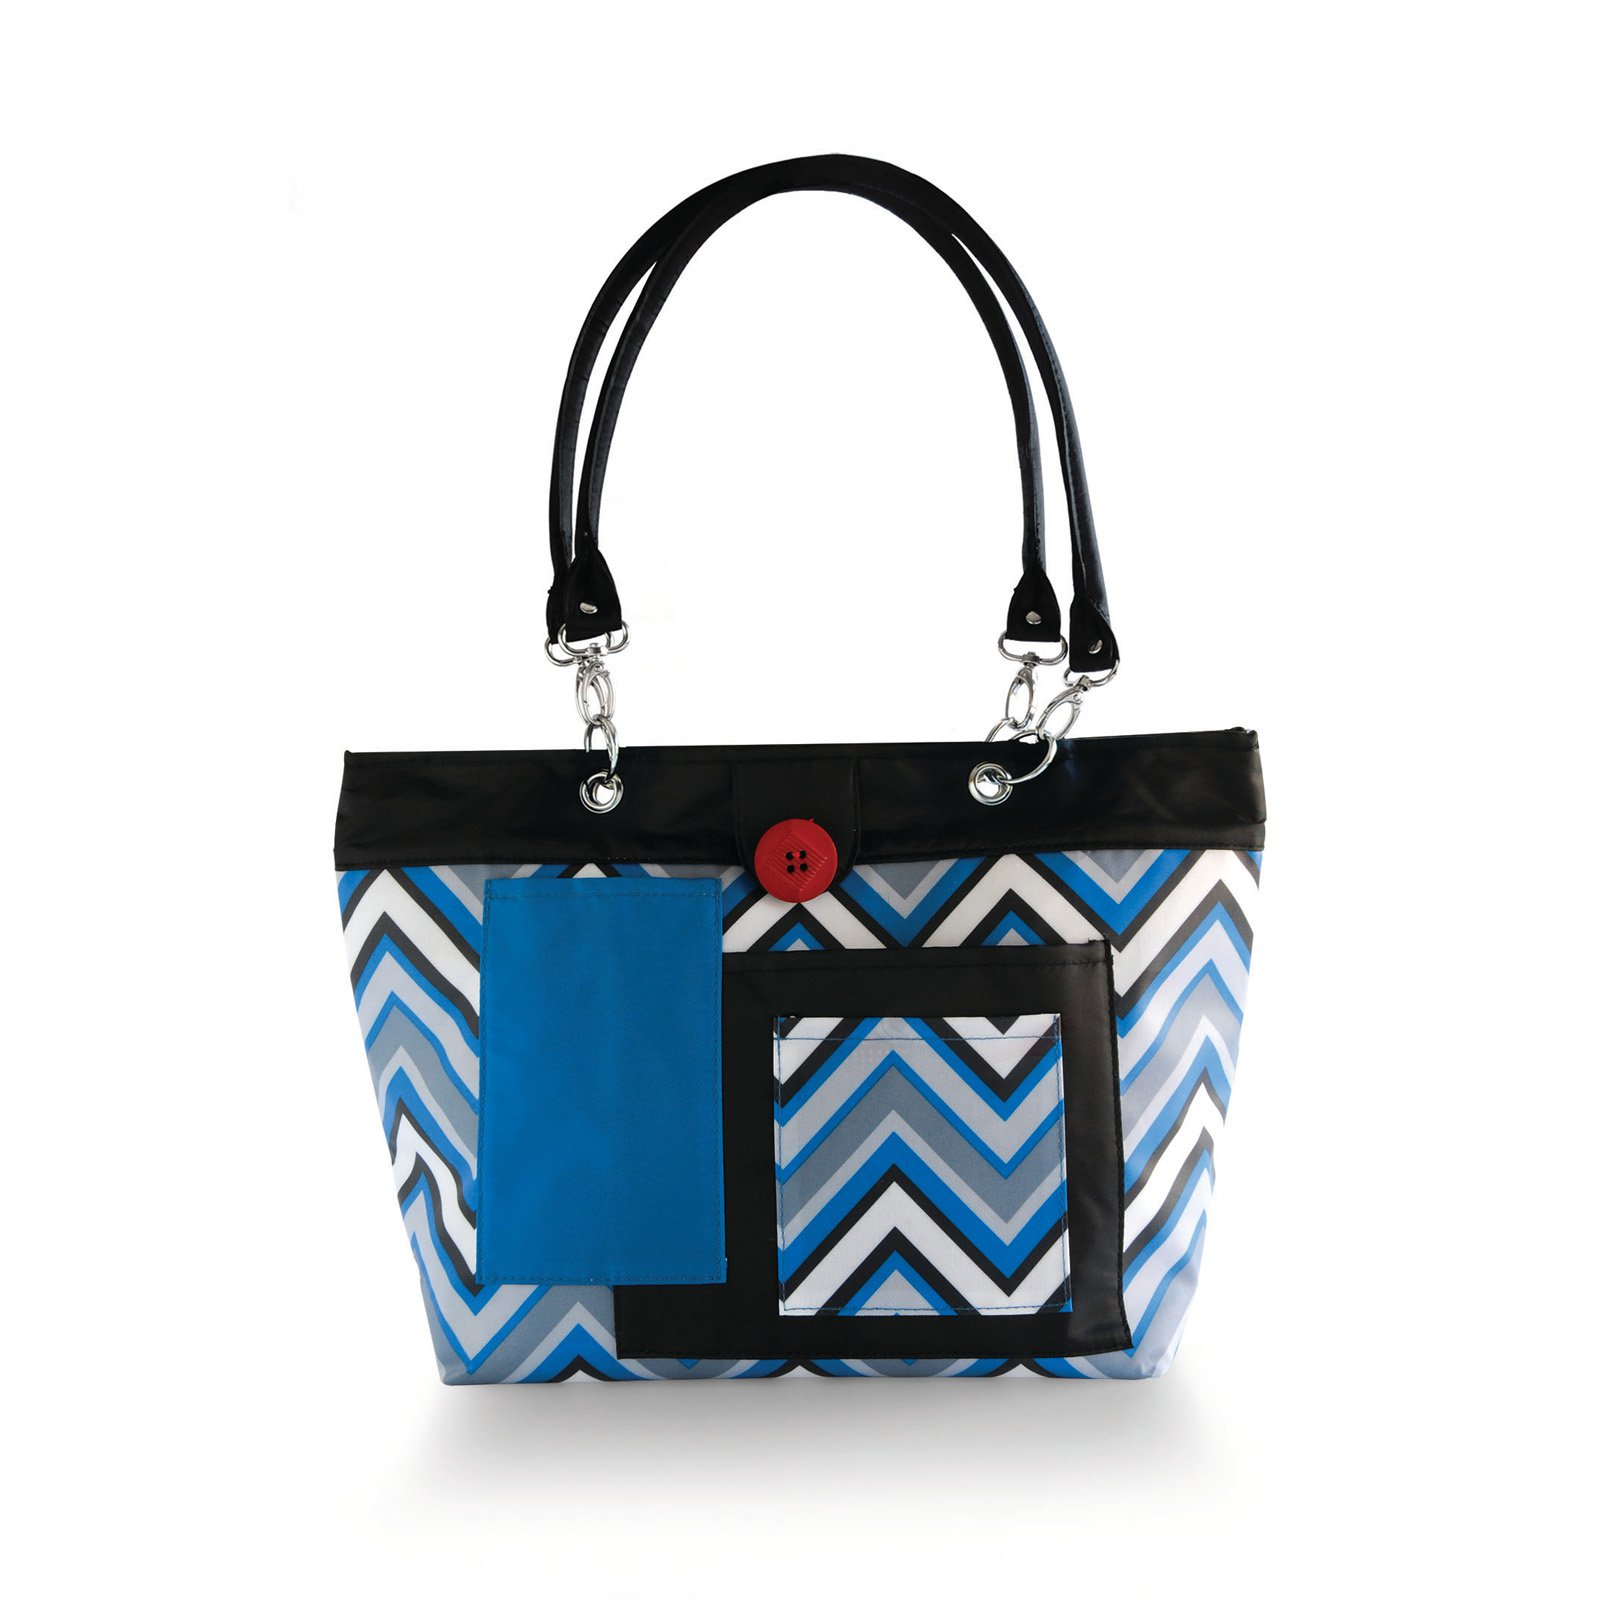 Image of 2 Red Hens Rooster Diaper Bag - Chevron Stripes Blue